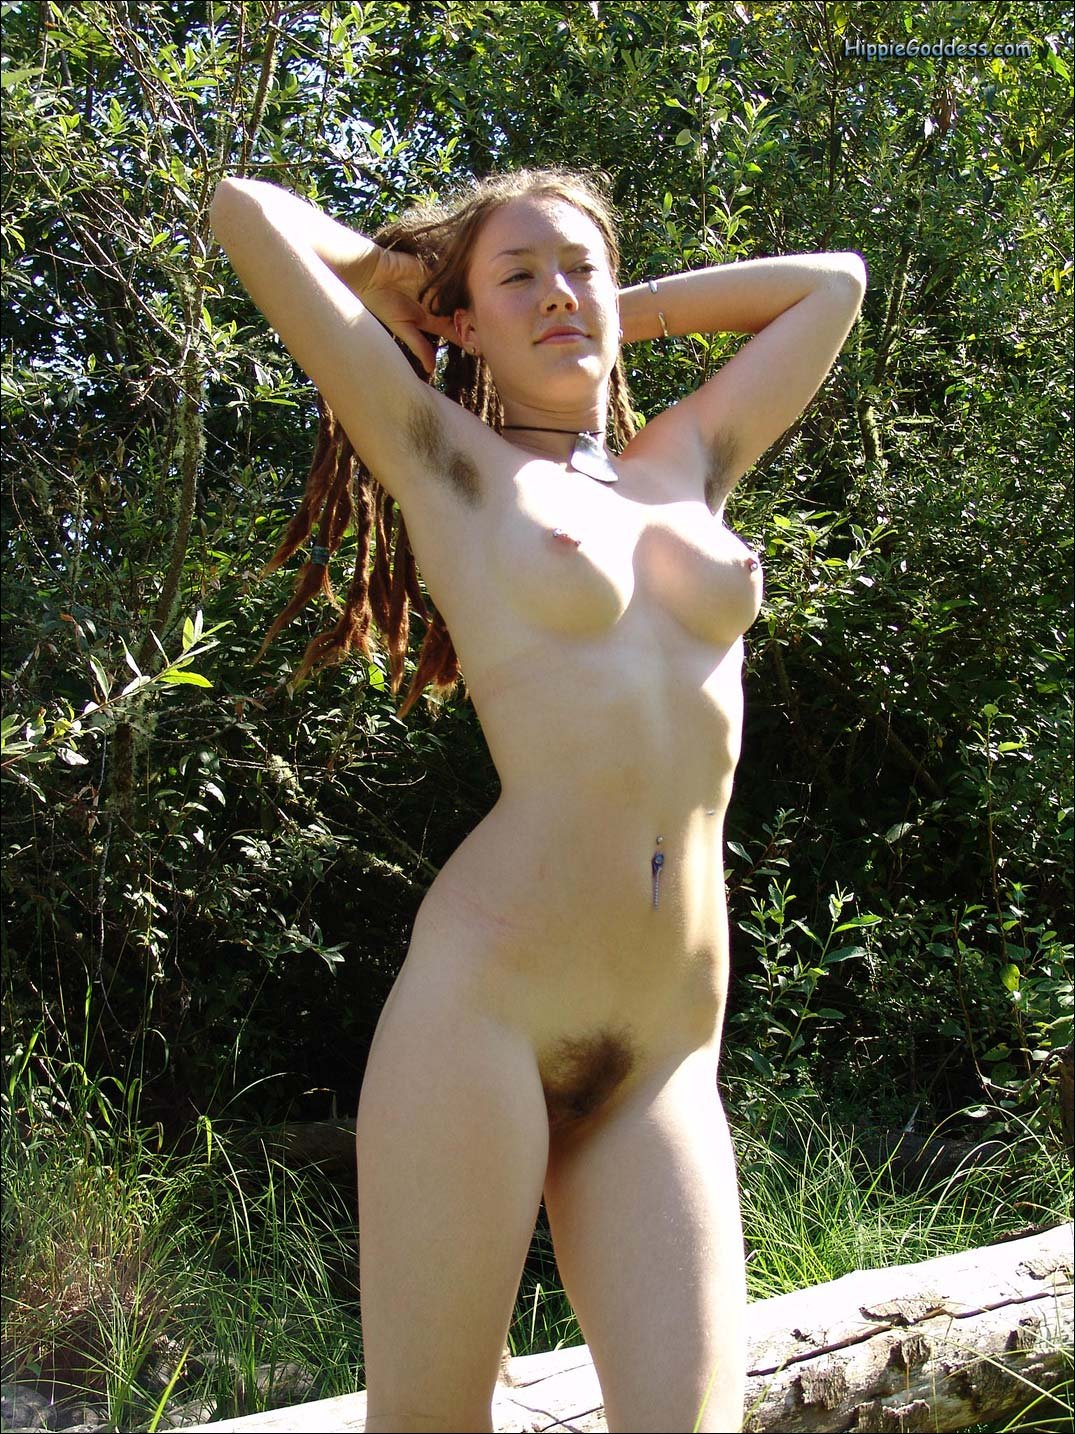 Mature blonde mom nude beach